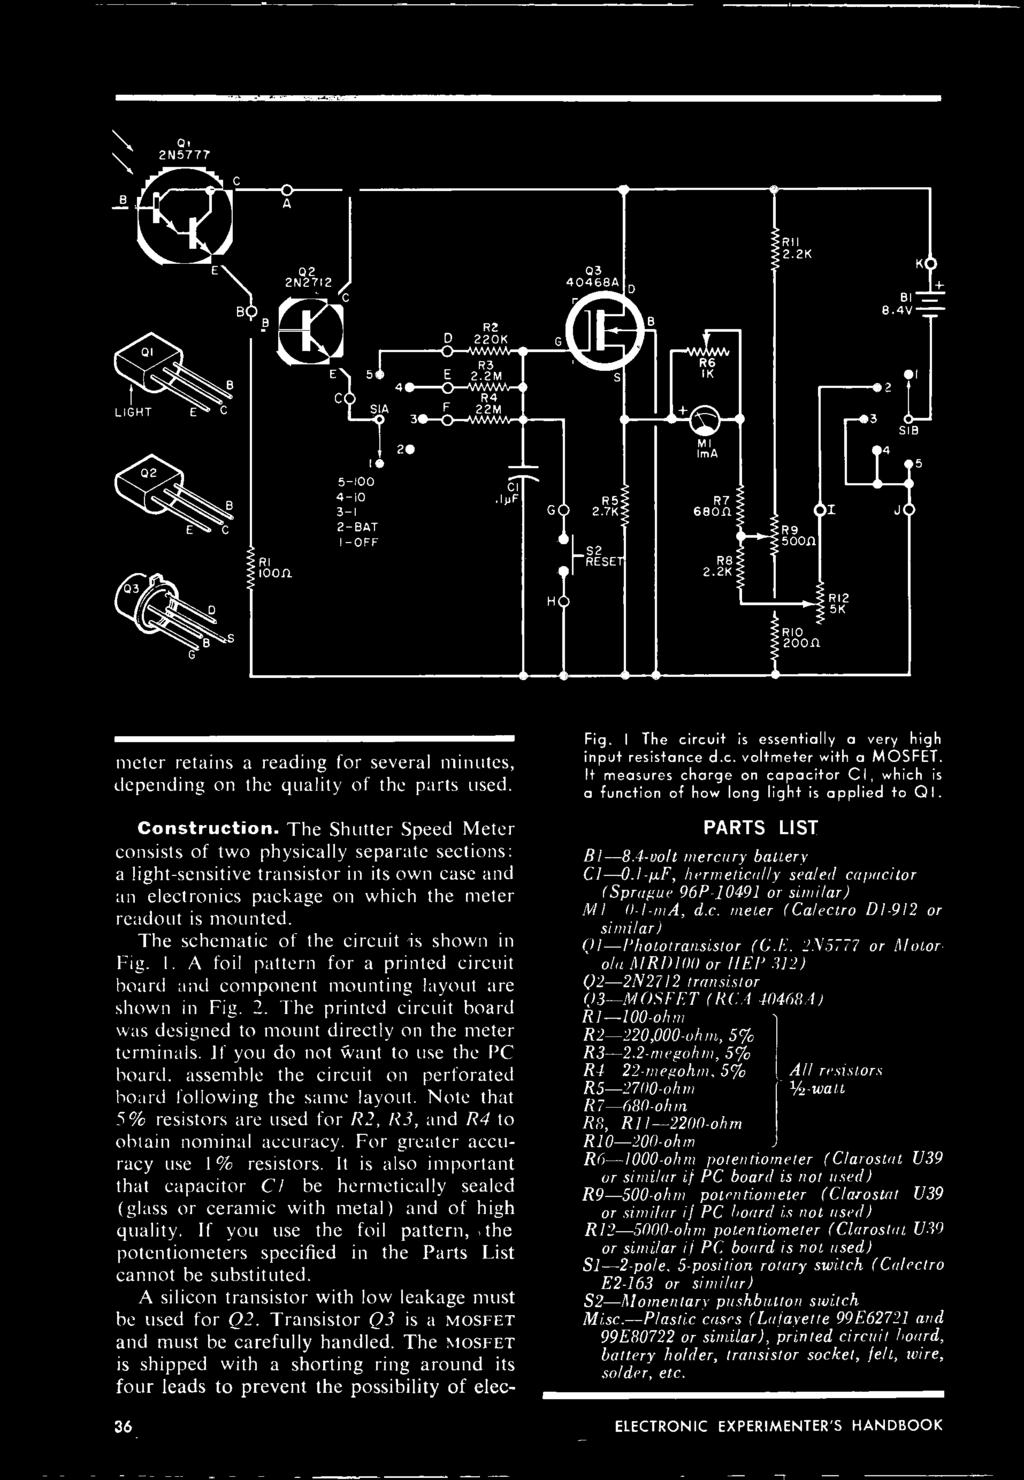 Handbook Experimenters 1973 Electronic Decoder Build The Cbs Ee Solderable Perfboard Med Copper Pad Circuit Board West Florida Shutter Speed Meter Consists Of Two Physically Separate Sections A Light Sensitive Transistor